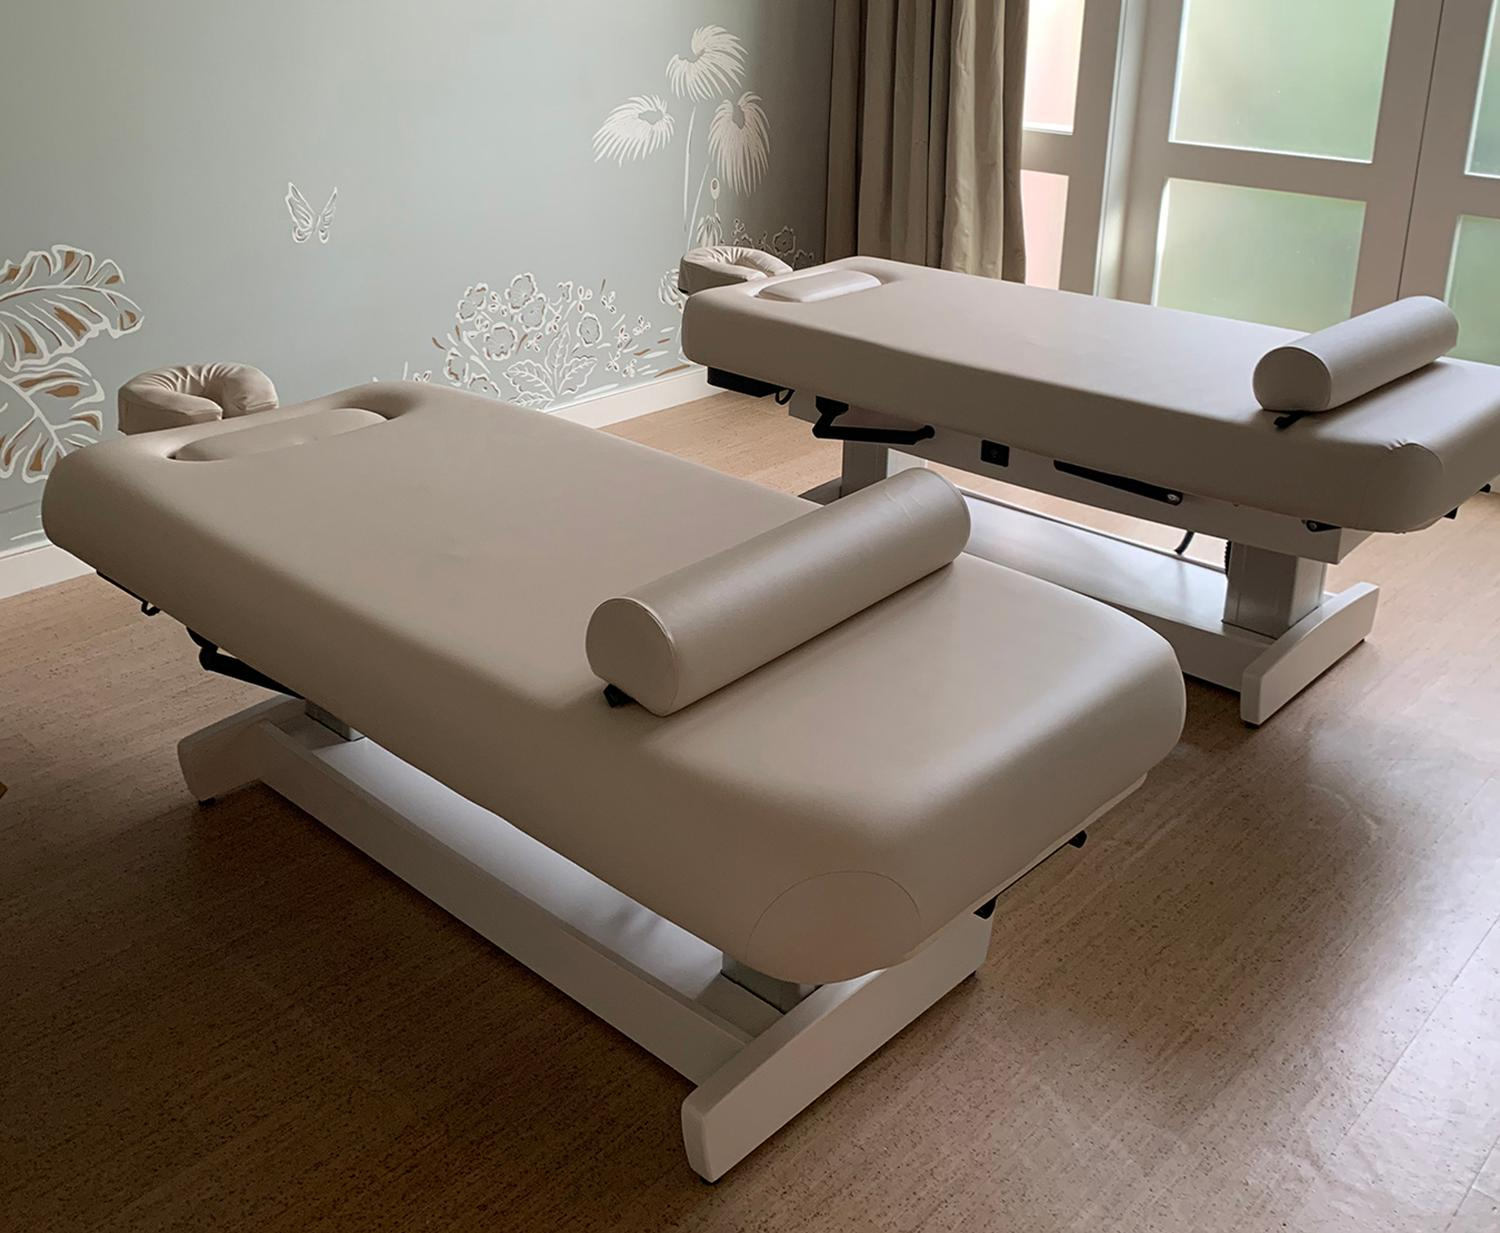 The new feature allows operators to easily replace massage table pads without tools when fabric or foam starts to show signs of wear